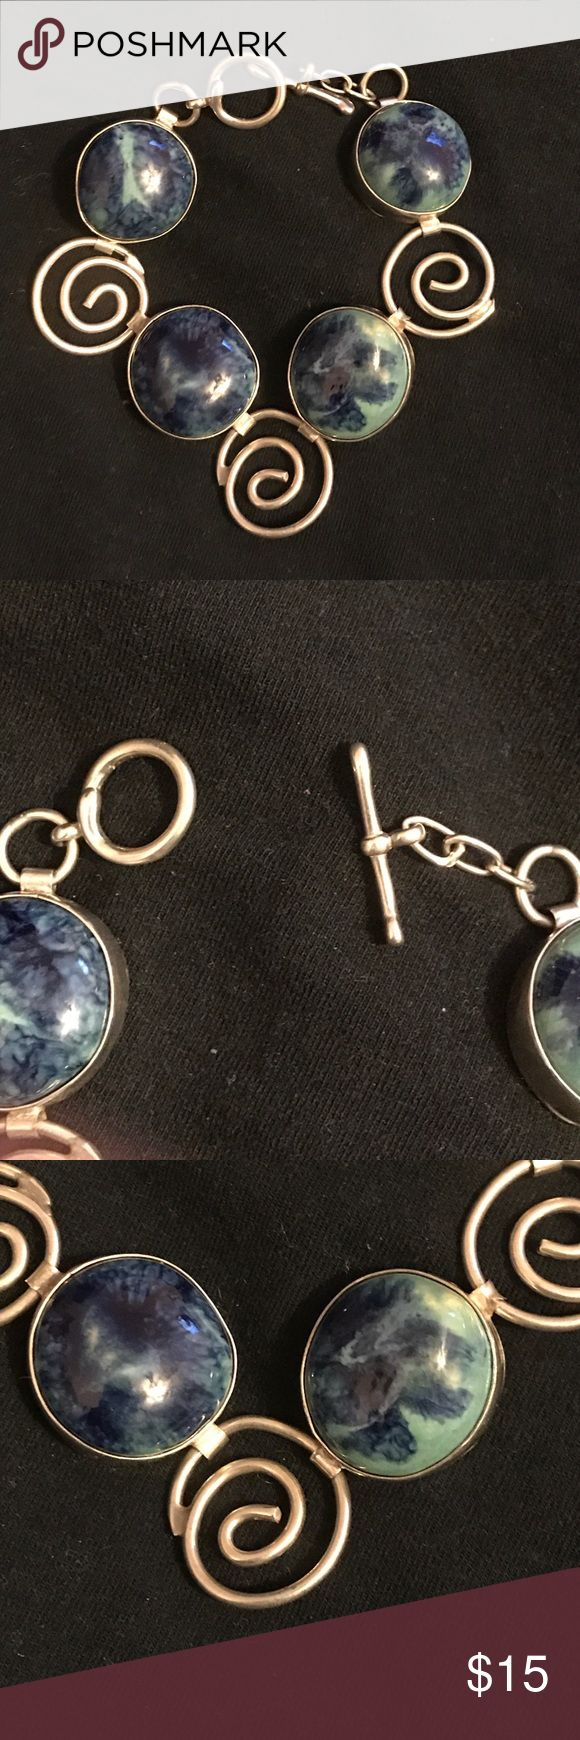 Metal and blue stone bracelet Metal and blue green stone bracelet. Initials on back are JLK (Unsure of the meaning of them but if you're initials happen to be JLK then this is your lucky day!) Great condition. Or best offer Jewelry Bracelets